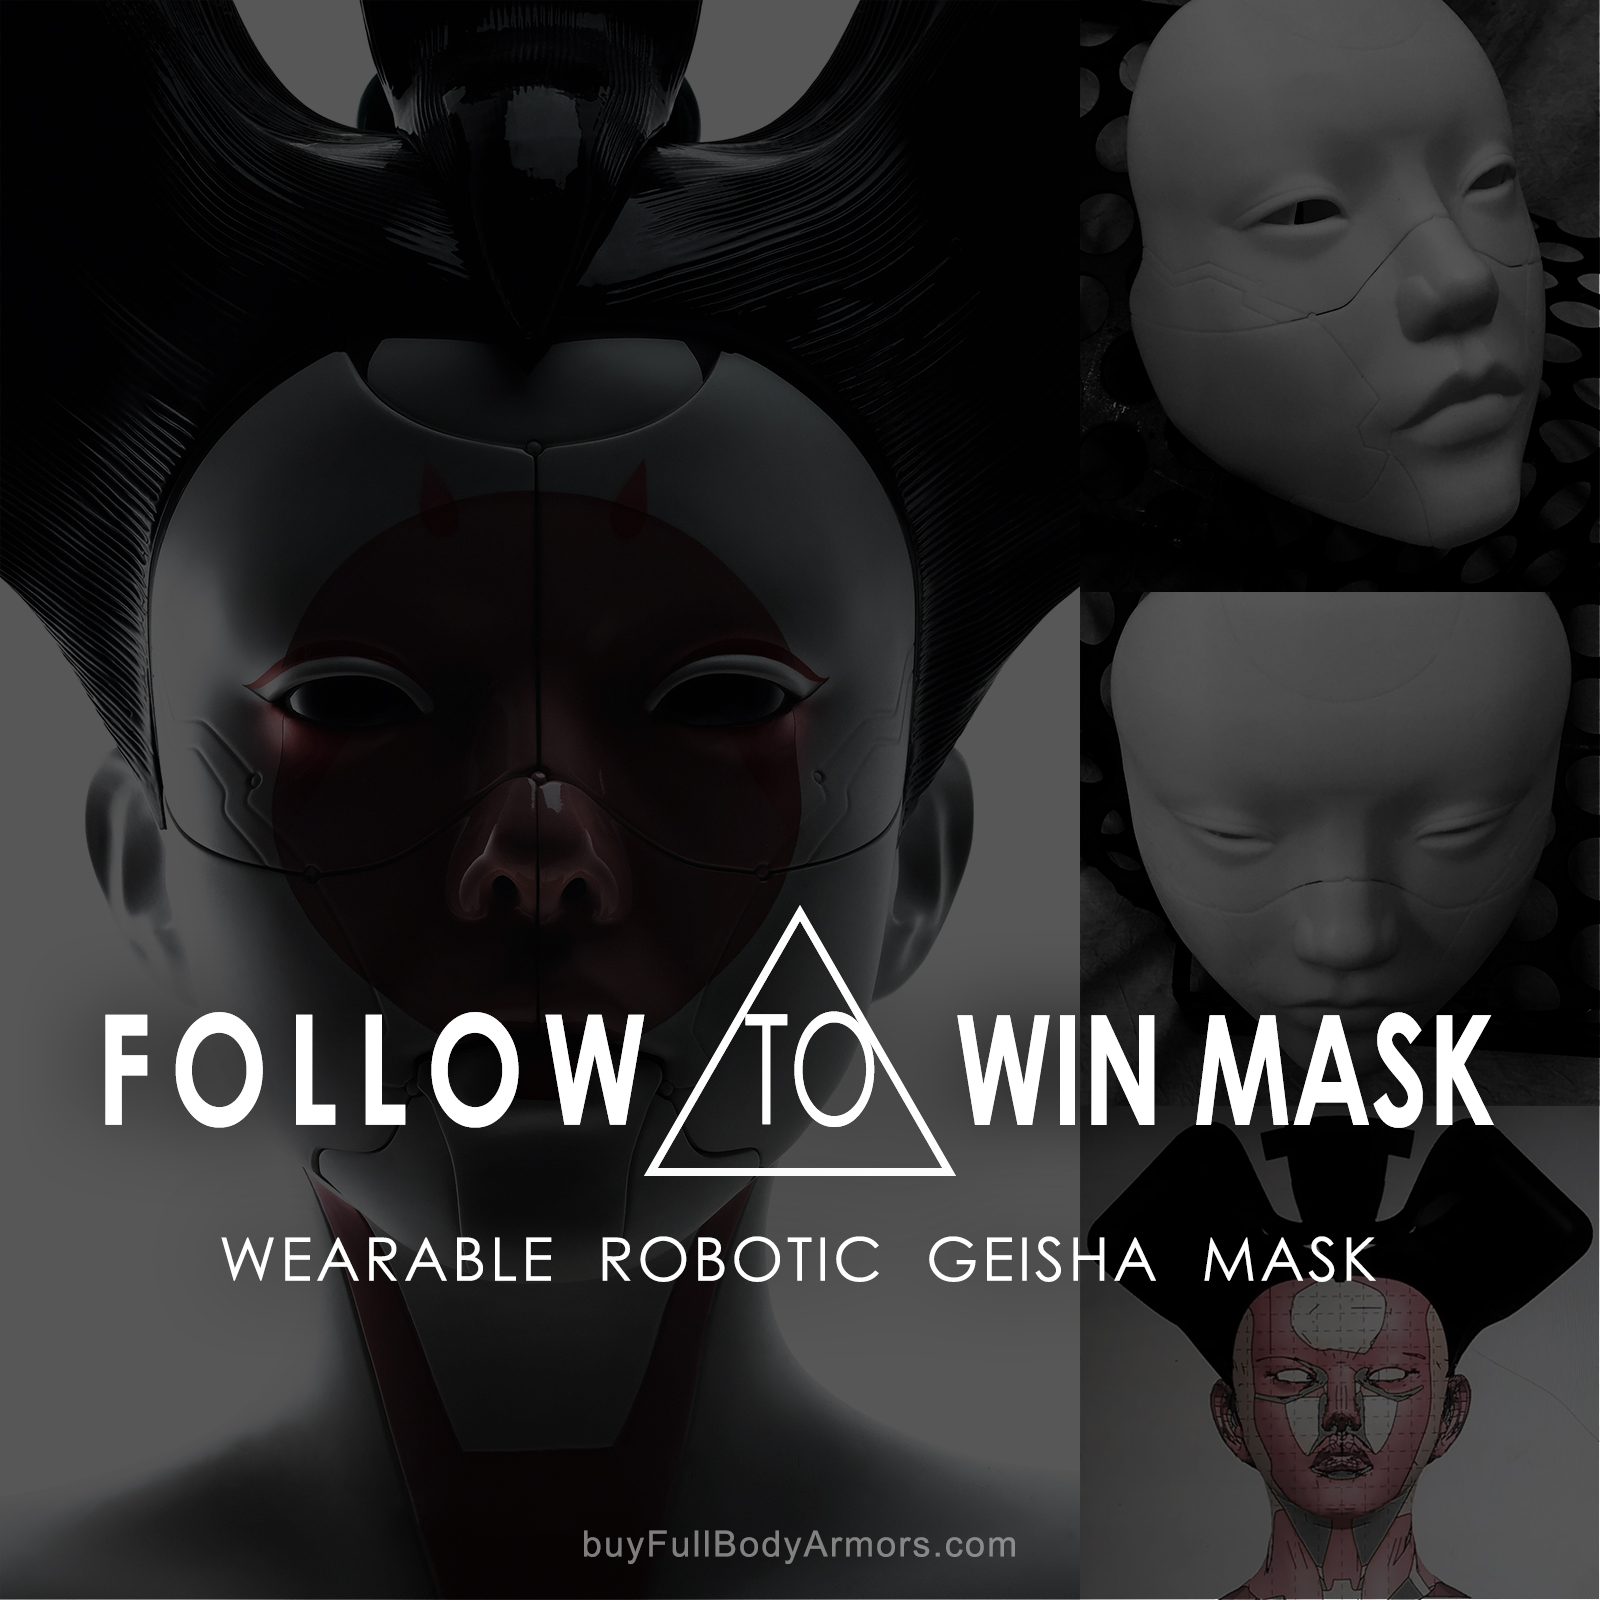 Follow our Instagram to win gift! - Wearable Robotic Geisha Mask (Ghost in the Shell 2017 Movie)